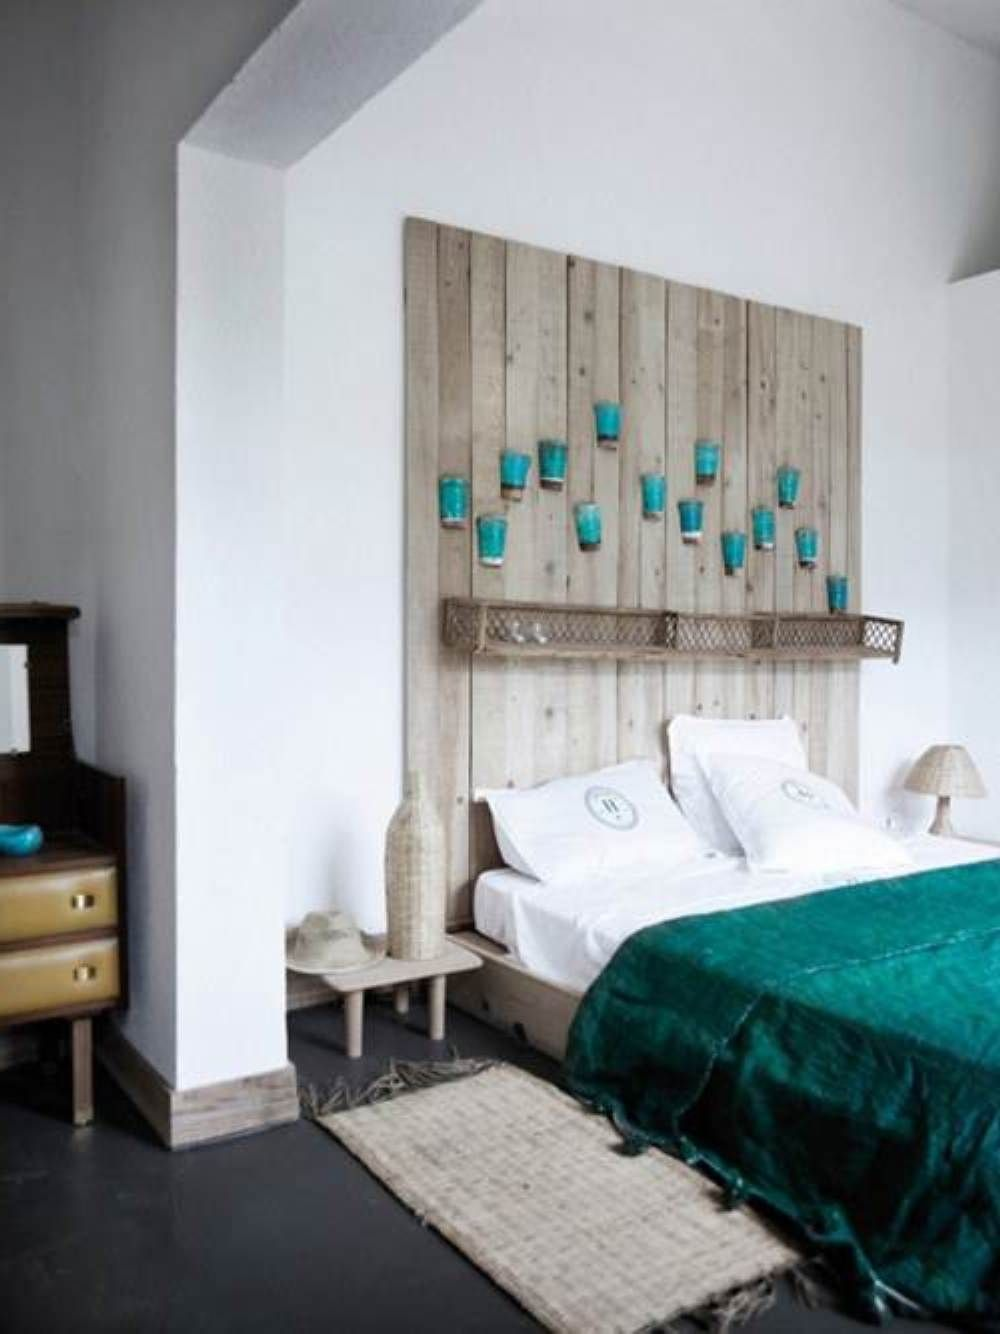 headboard wall decor ideas for bedroom | Guest Room | Pinterest ...